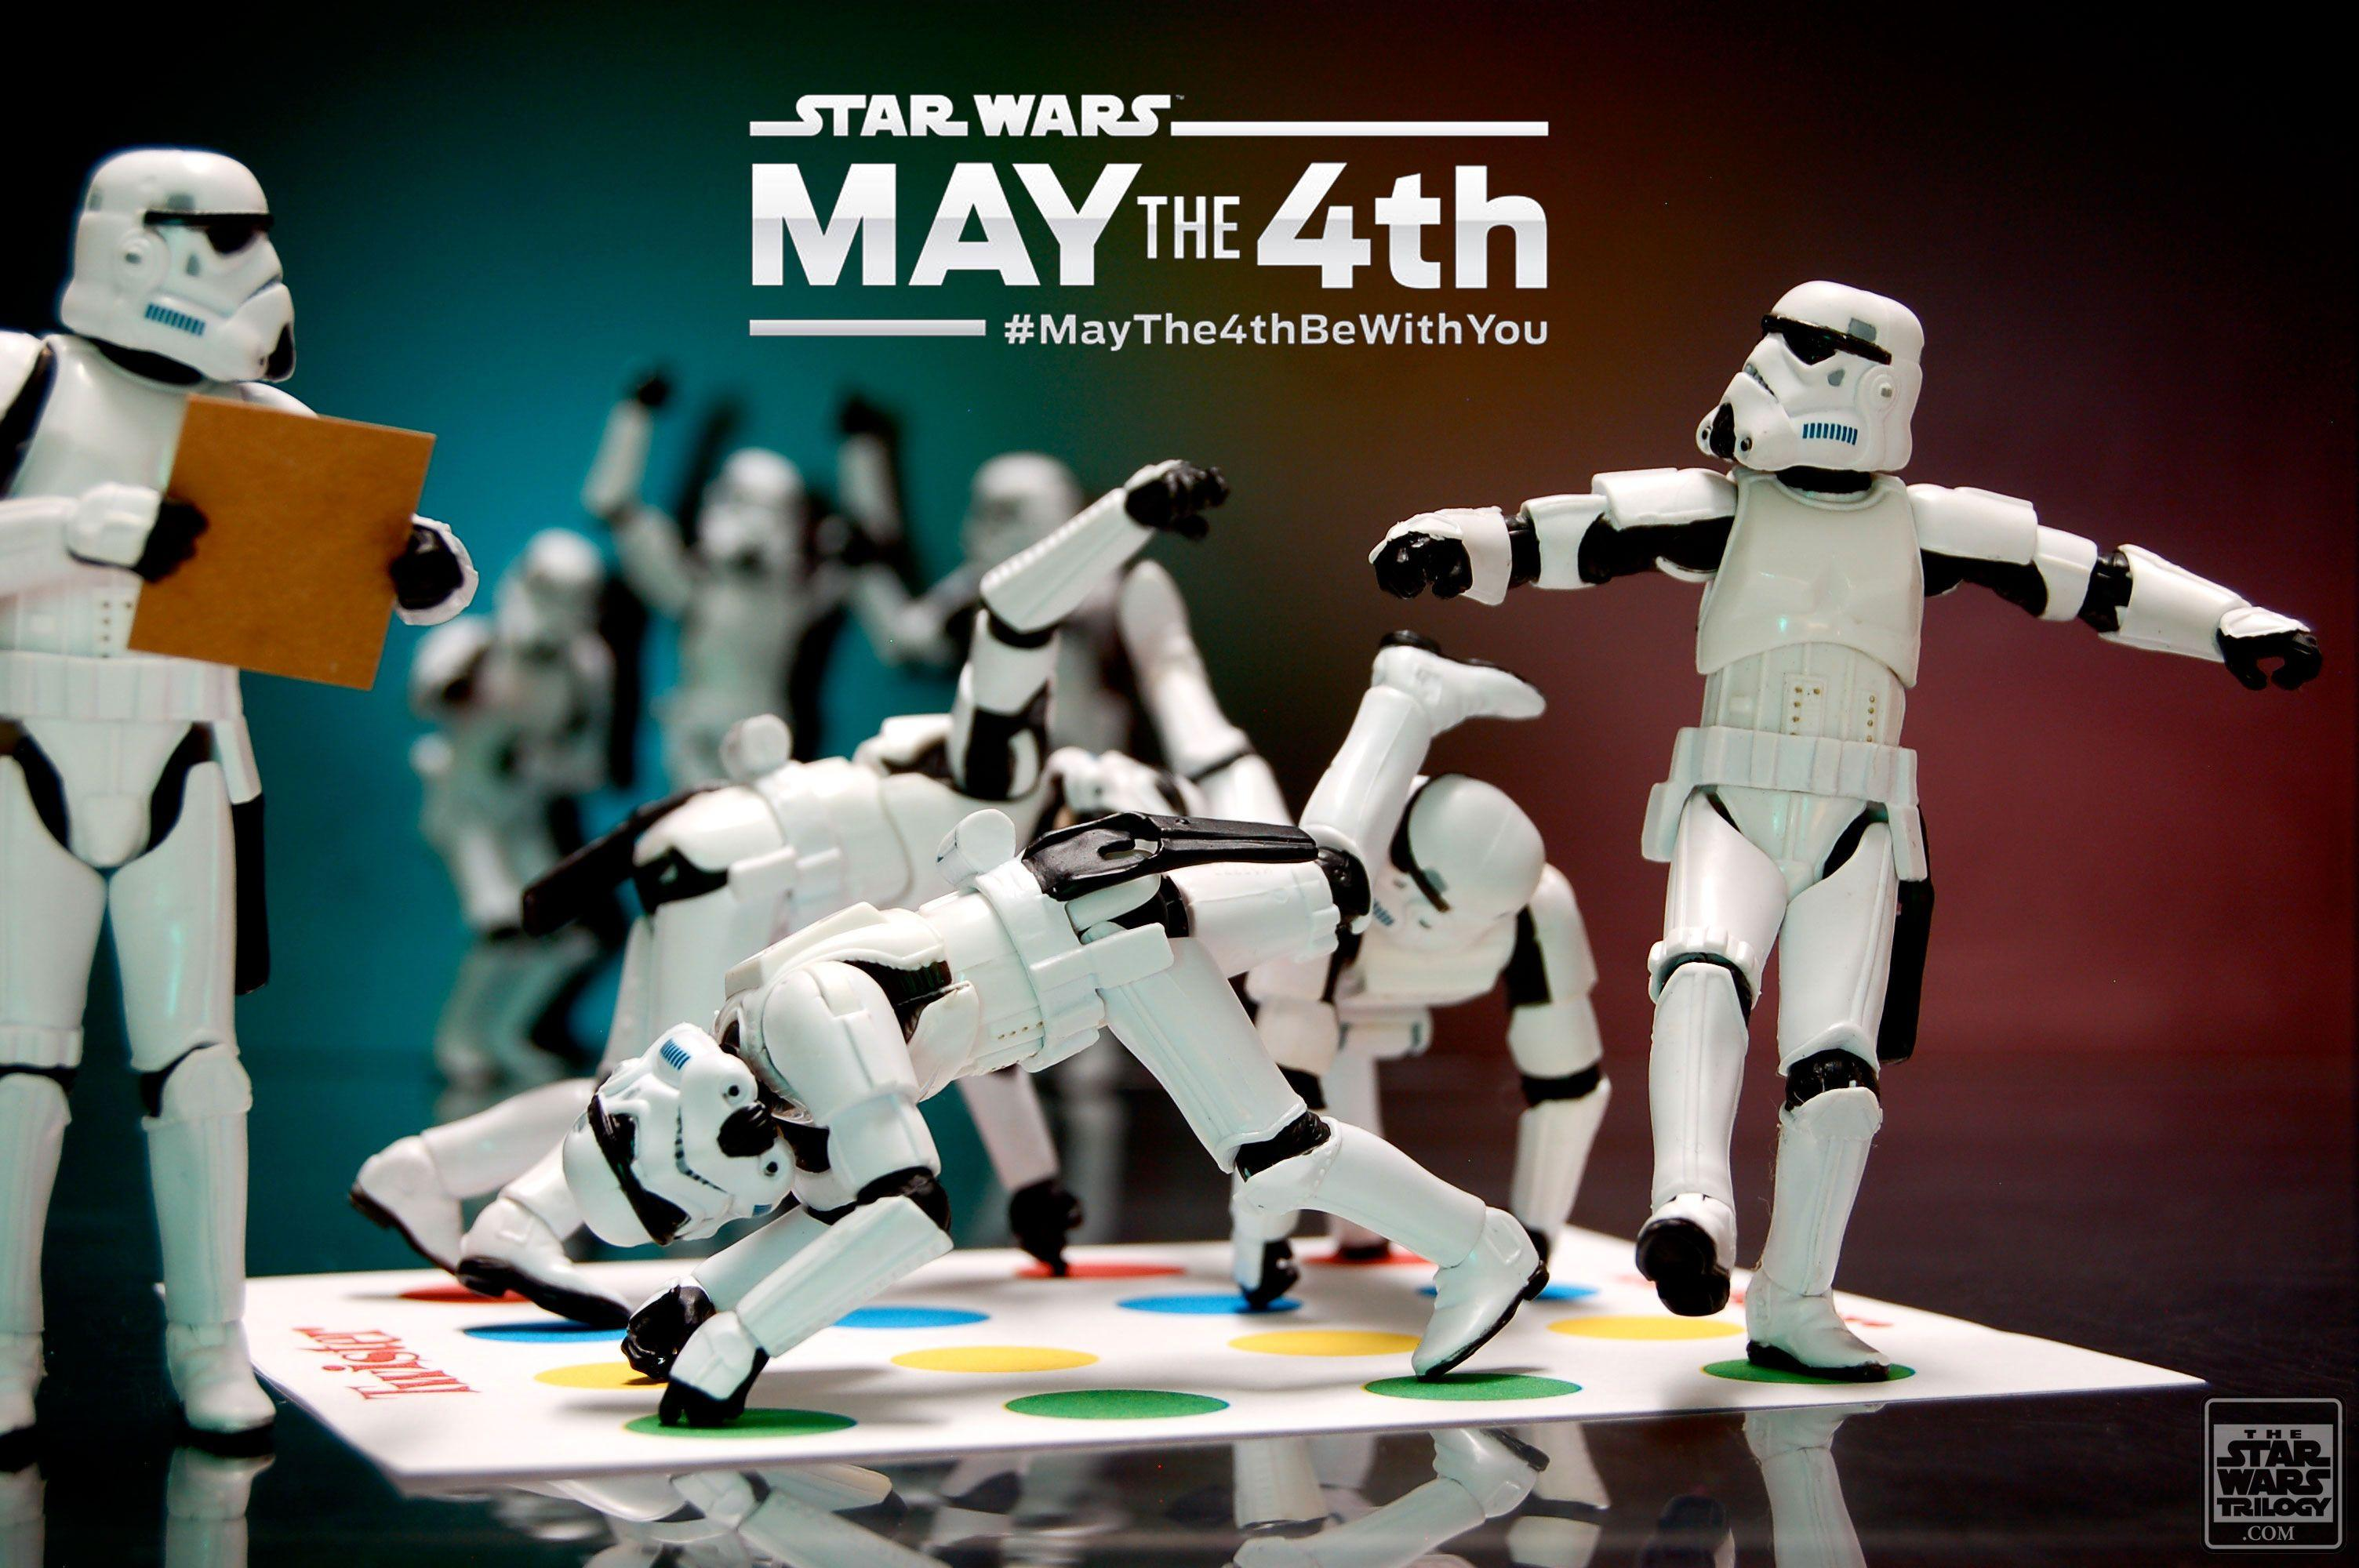 May The 4th Be With You Wallpapers Wallpaper Cave